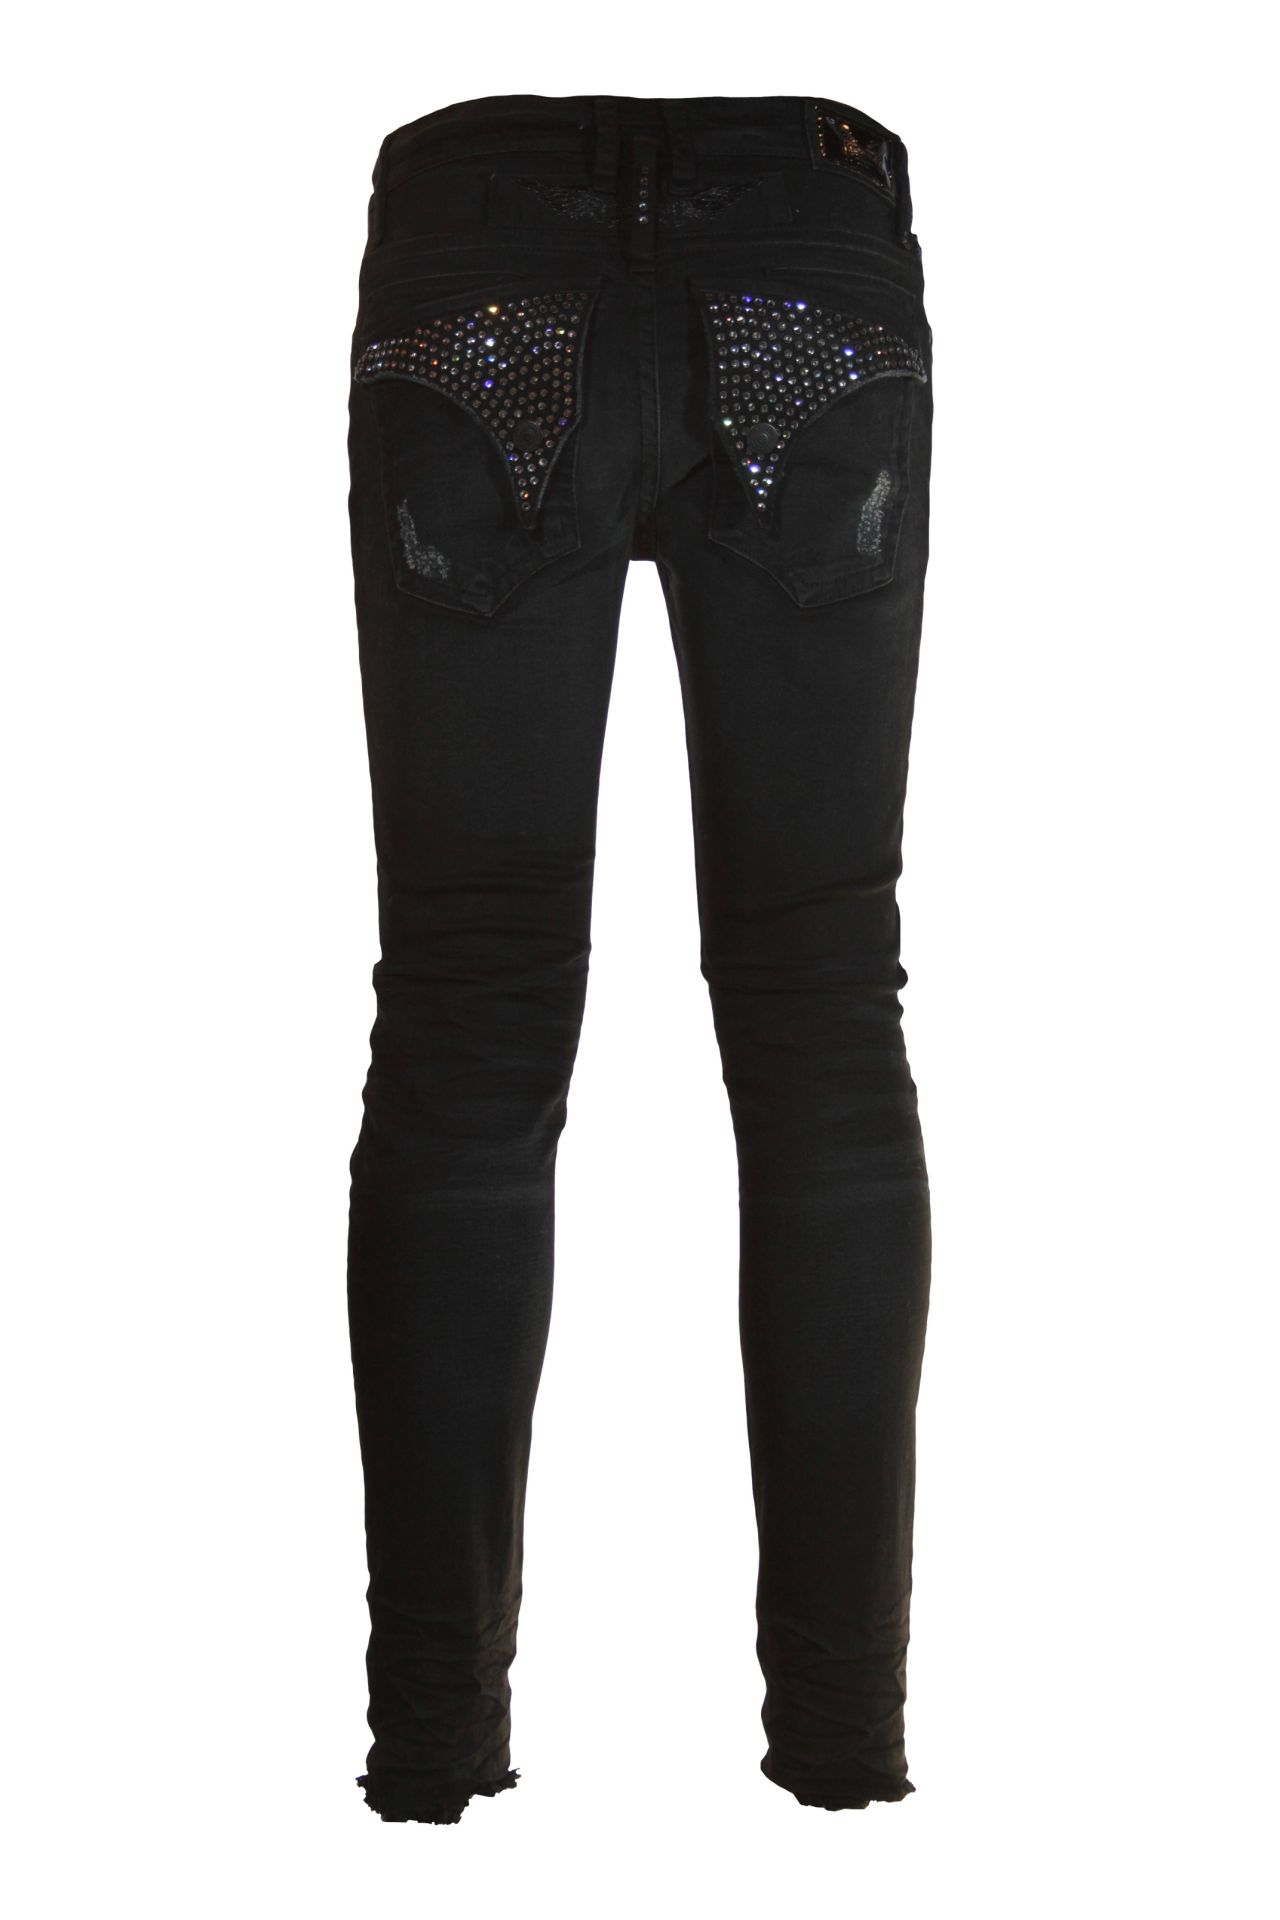 SKINNY LONG FLAP IN F_UP BLACK WITH SW CRYSTALS